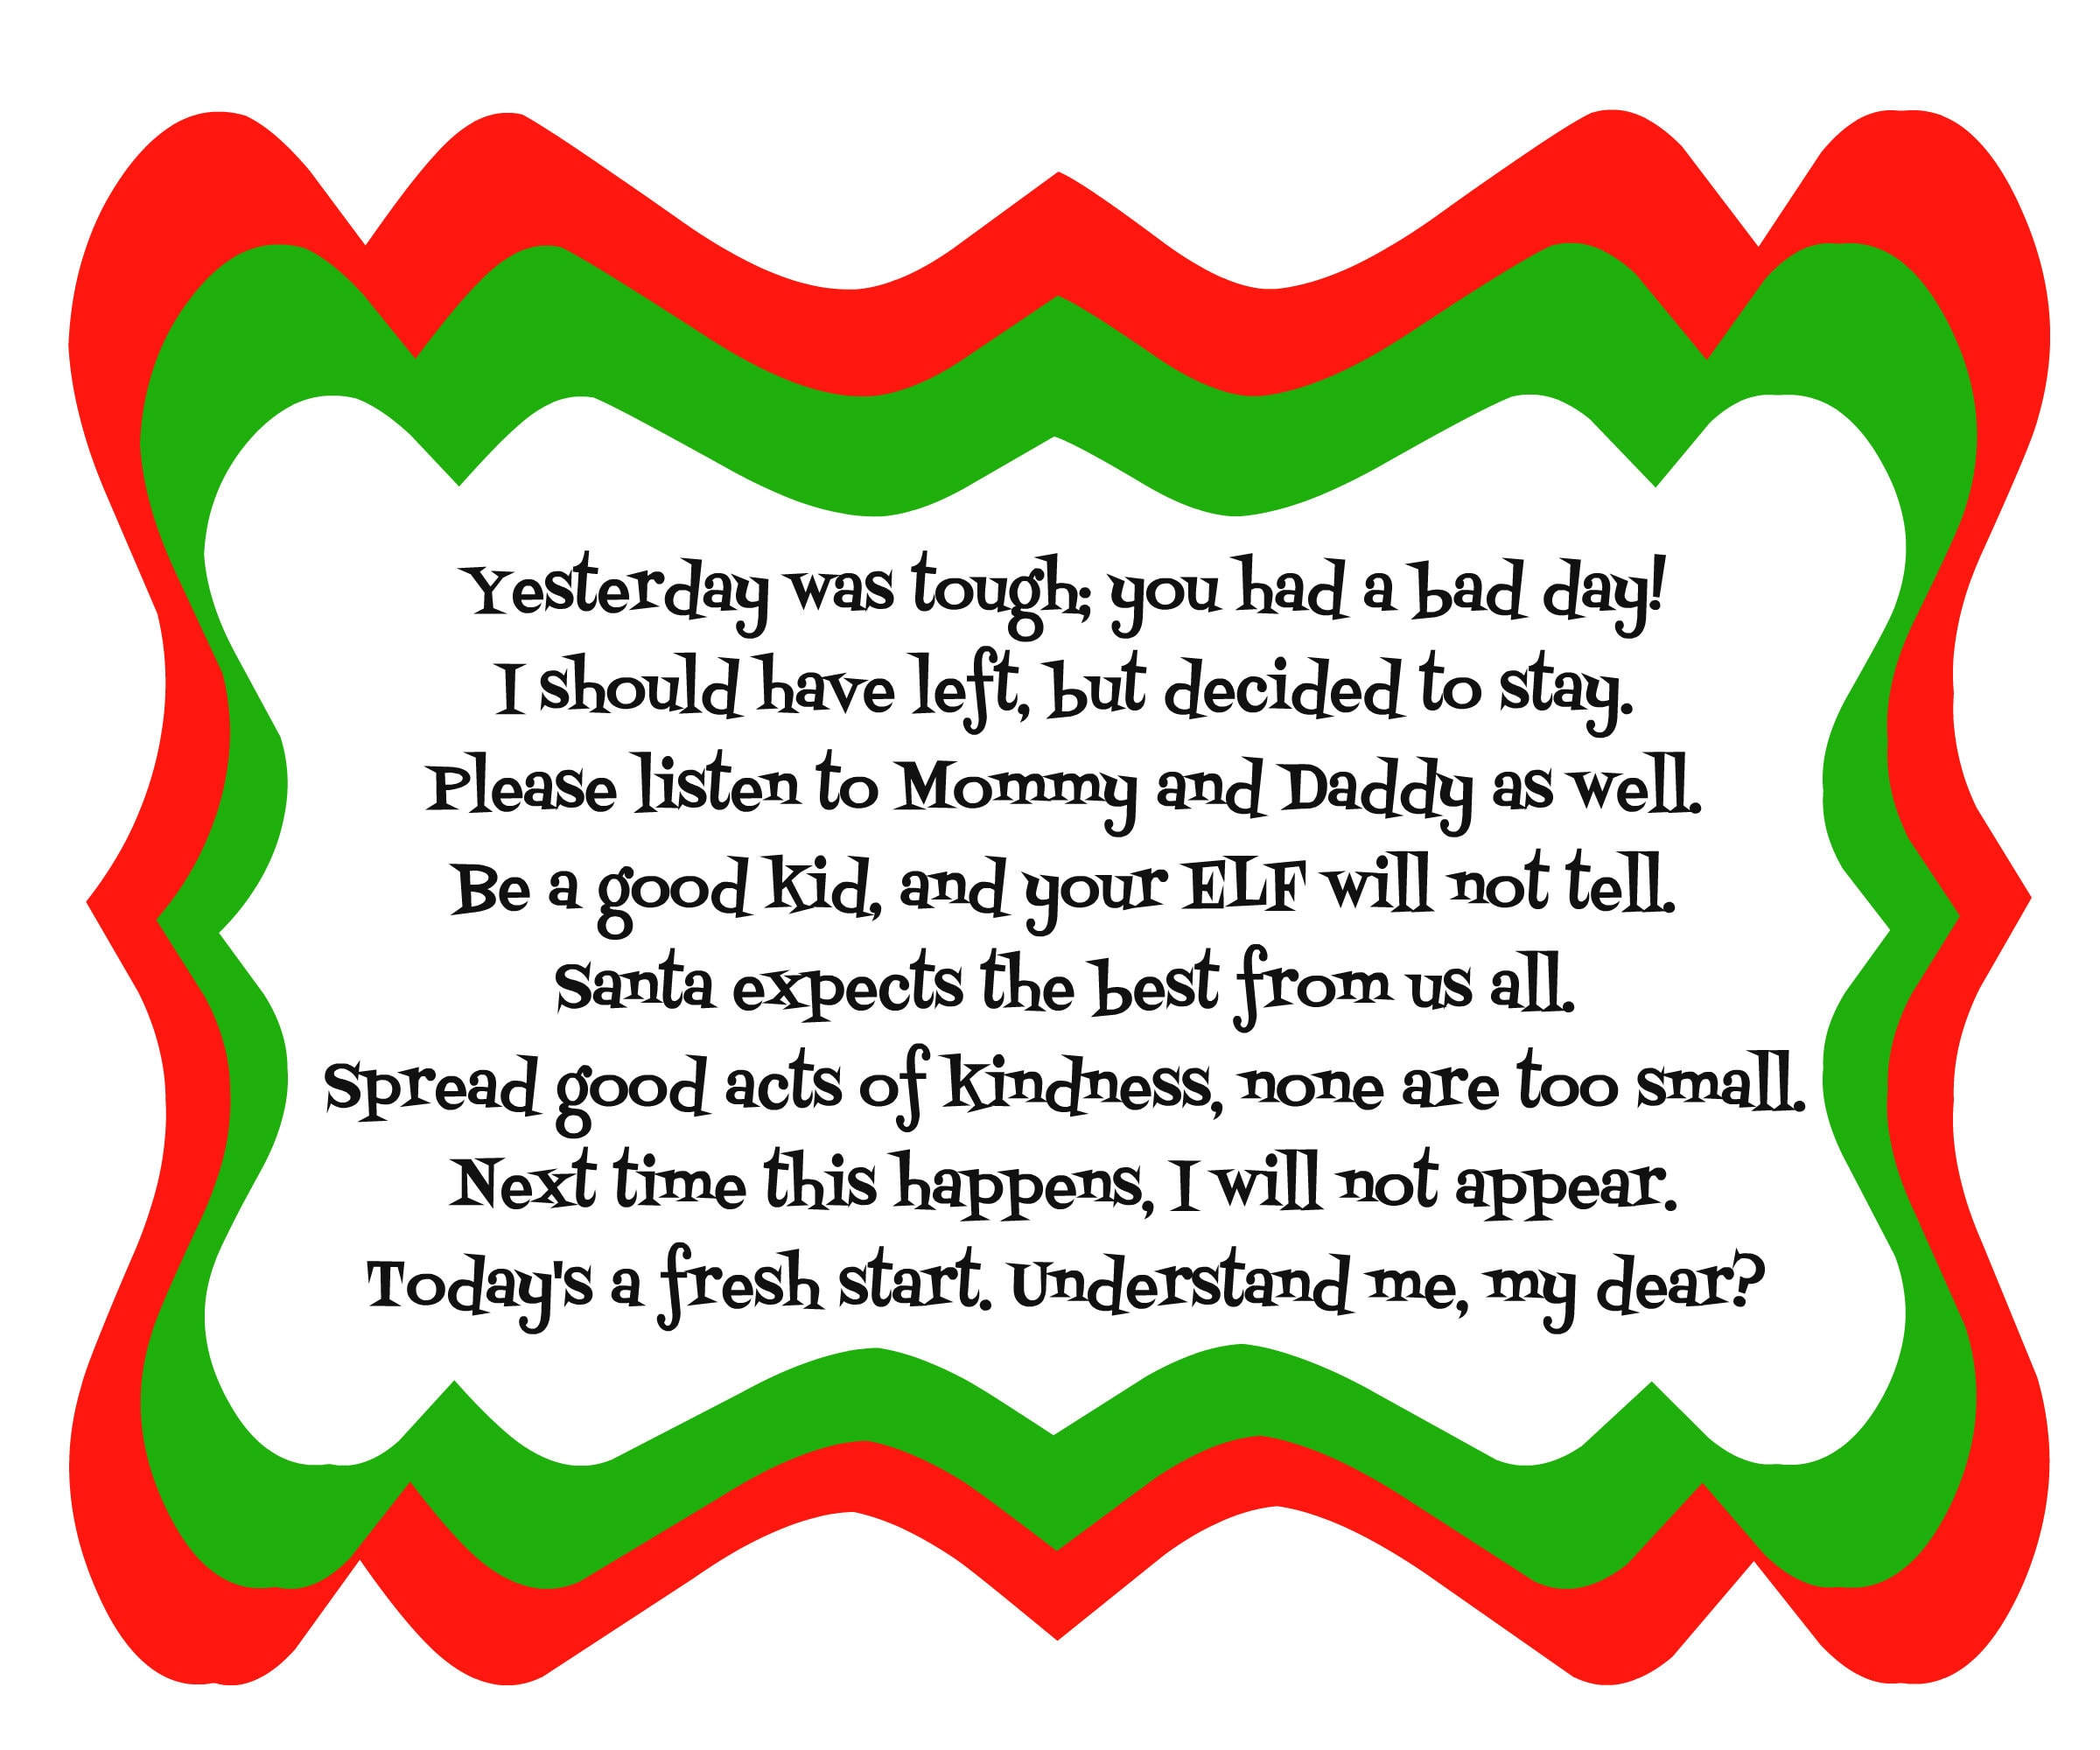 ... download the printable for free here: Elf on the Shelf Bad Day Poem